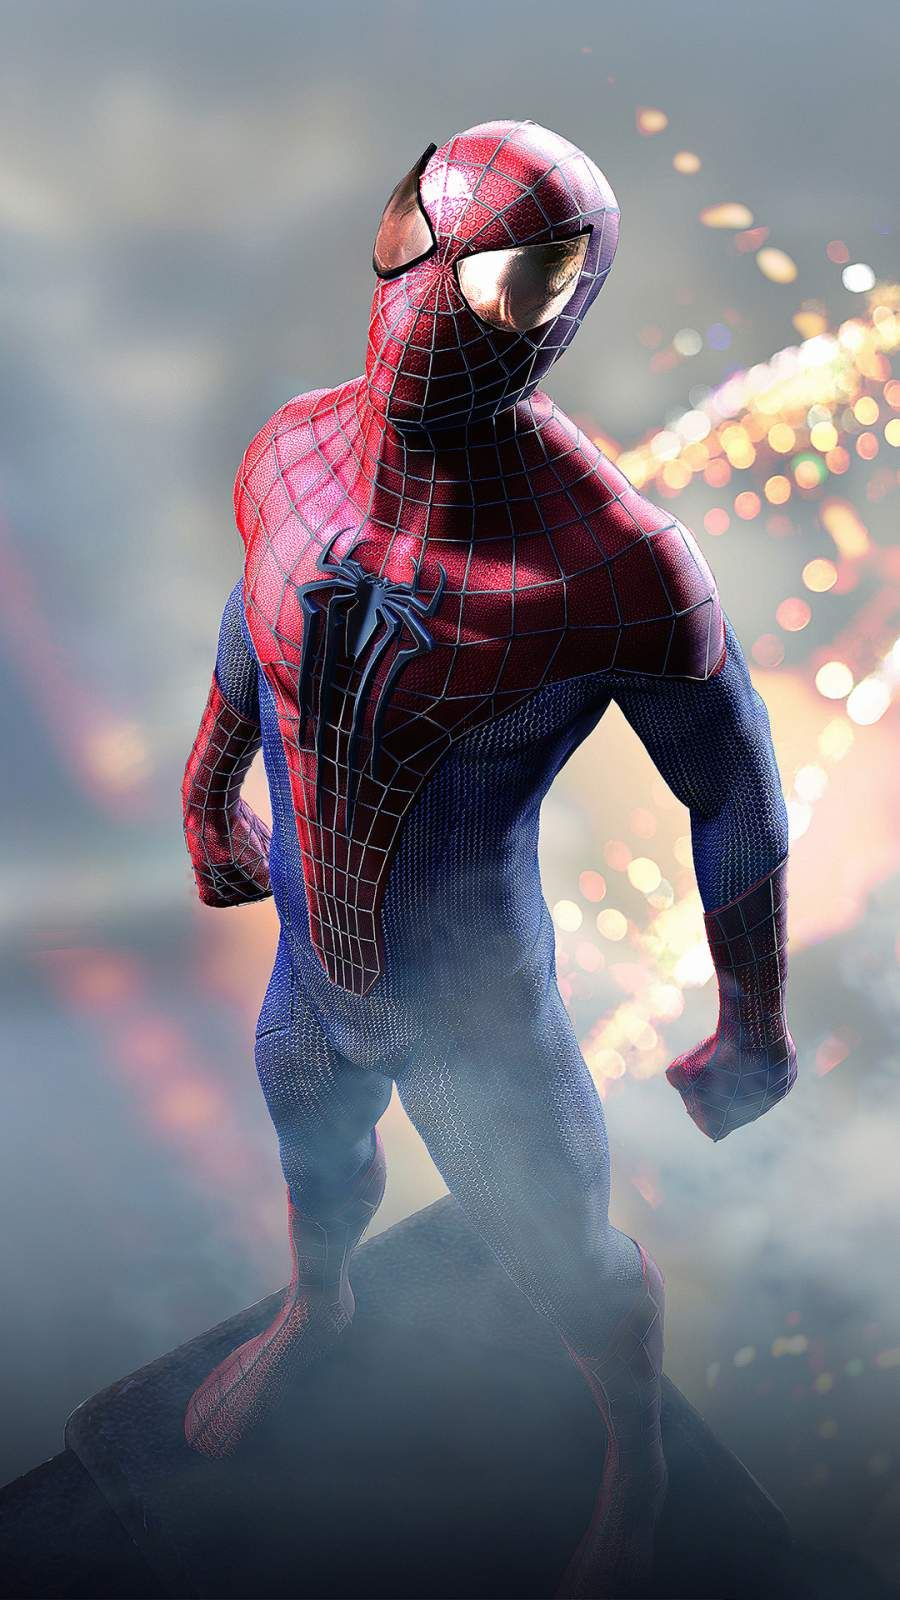 Spider Man 4k Iphone Wallpaper Spiderman Superhero Marvel Spiderman